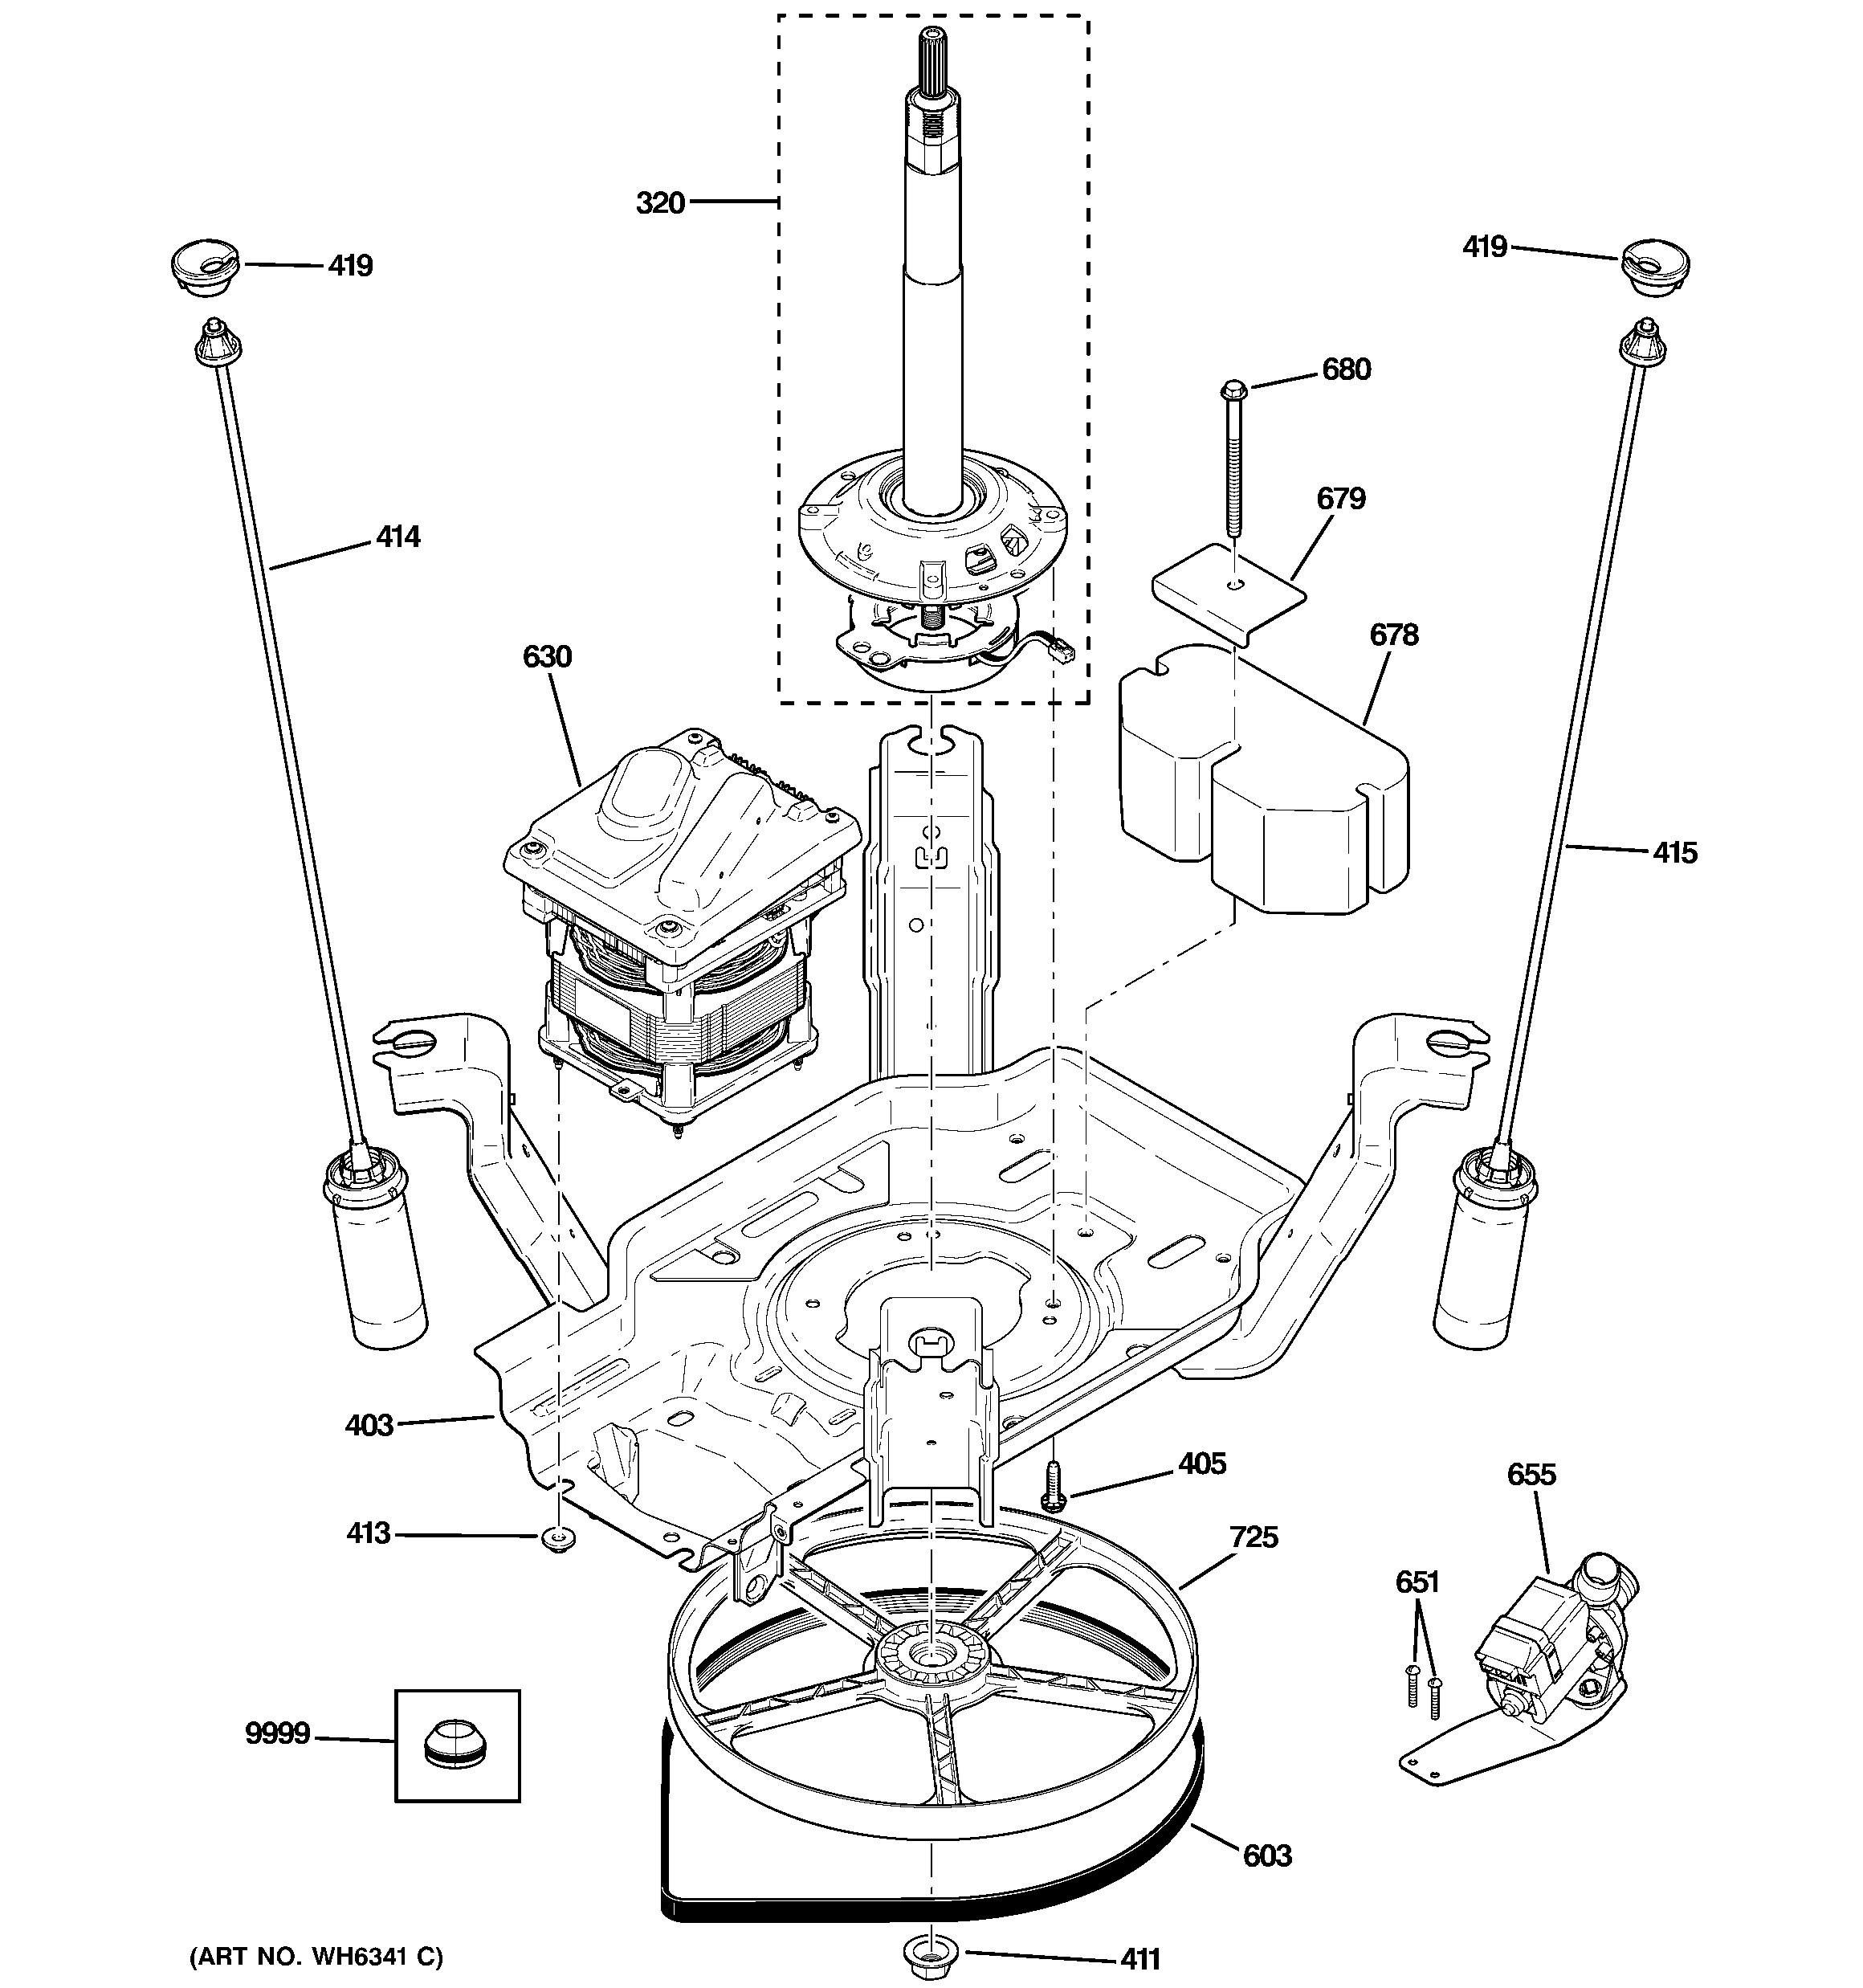 Engine Parts Diagram with Names Engine Parts Diagram Names Ge Washer Parts Model Wjre5500g0ww – My Of Engine Parts Diagram with Names